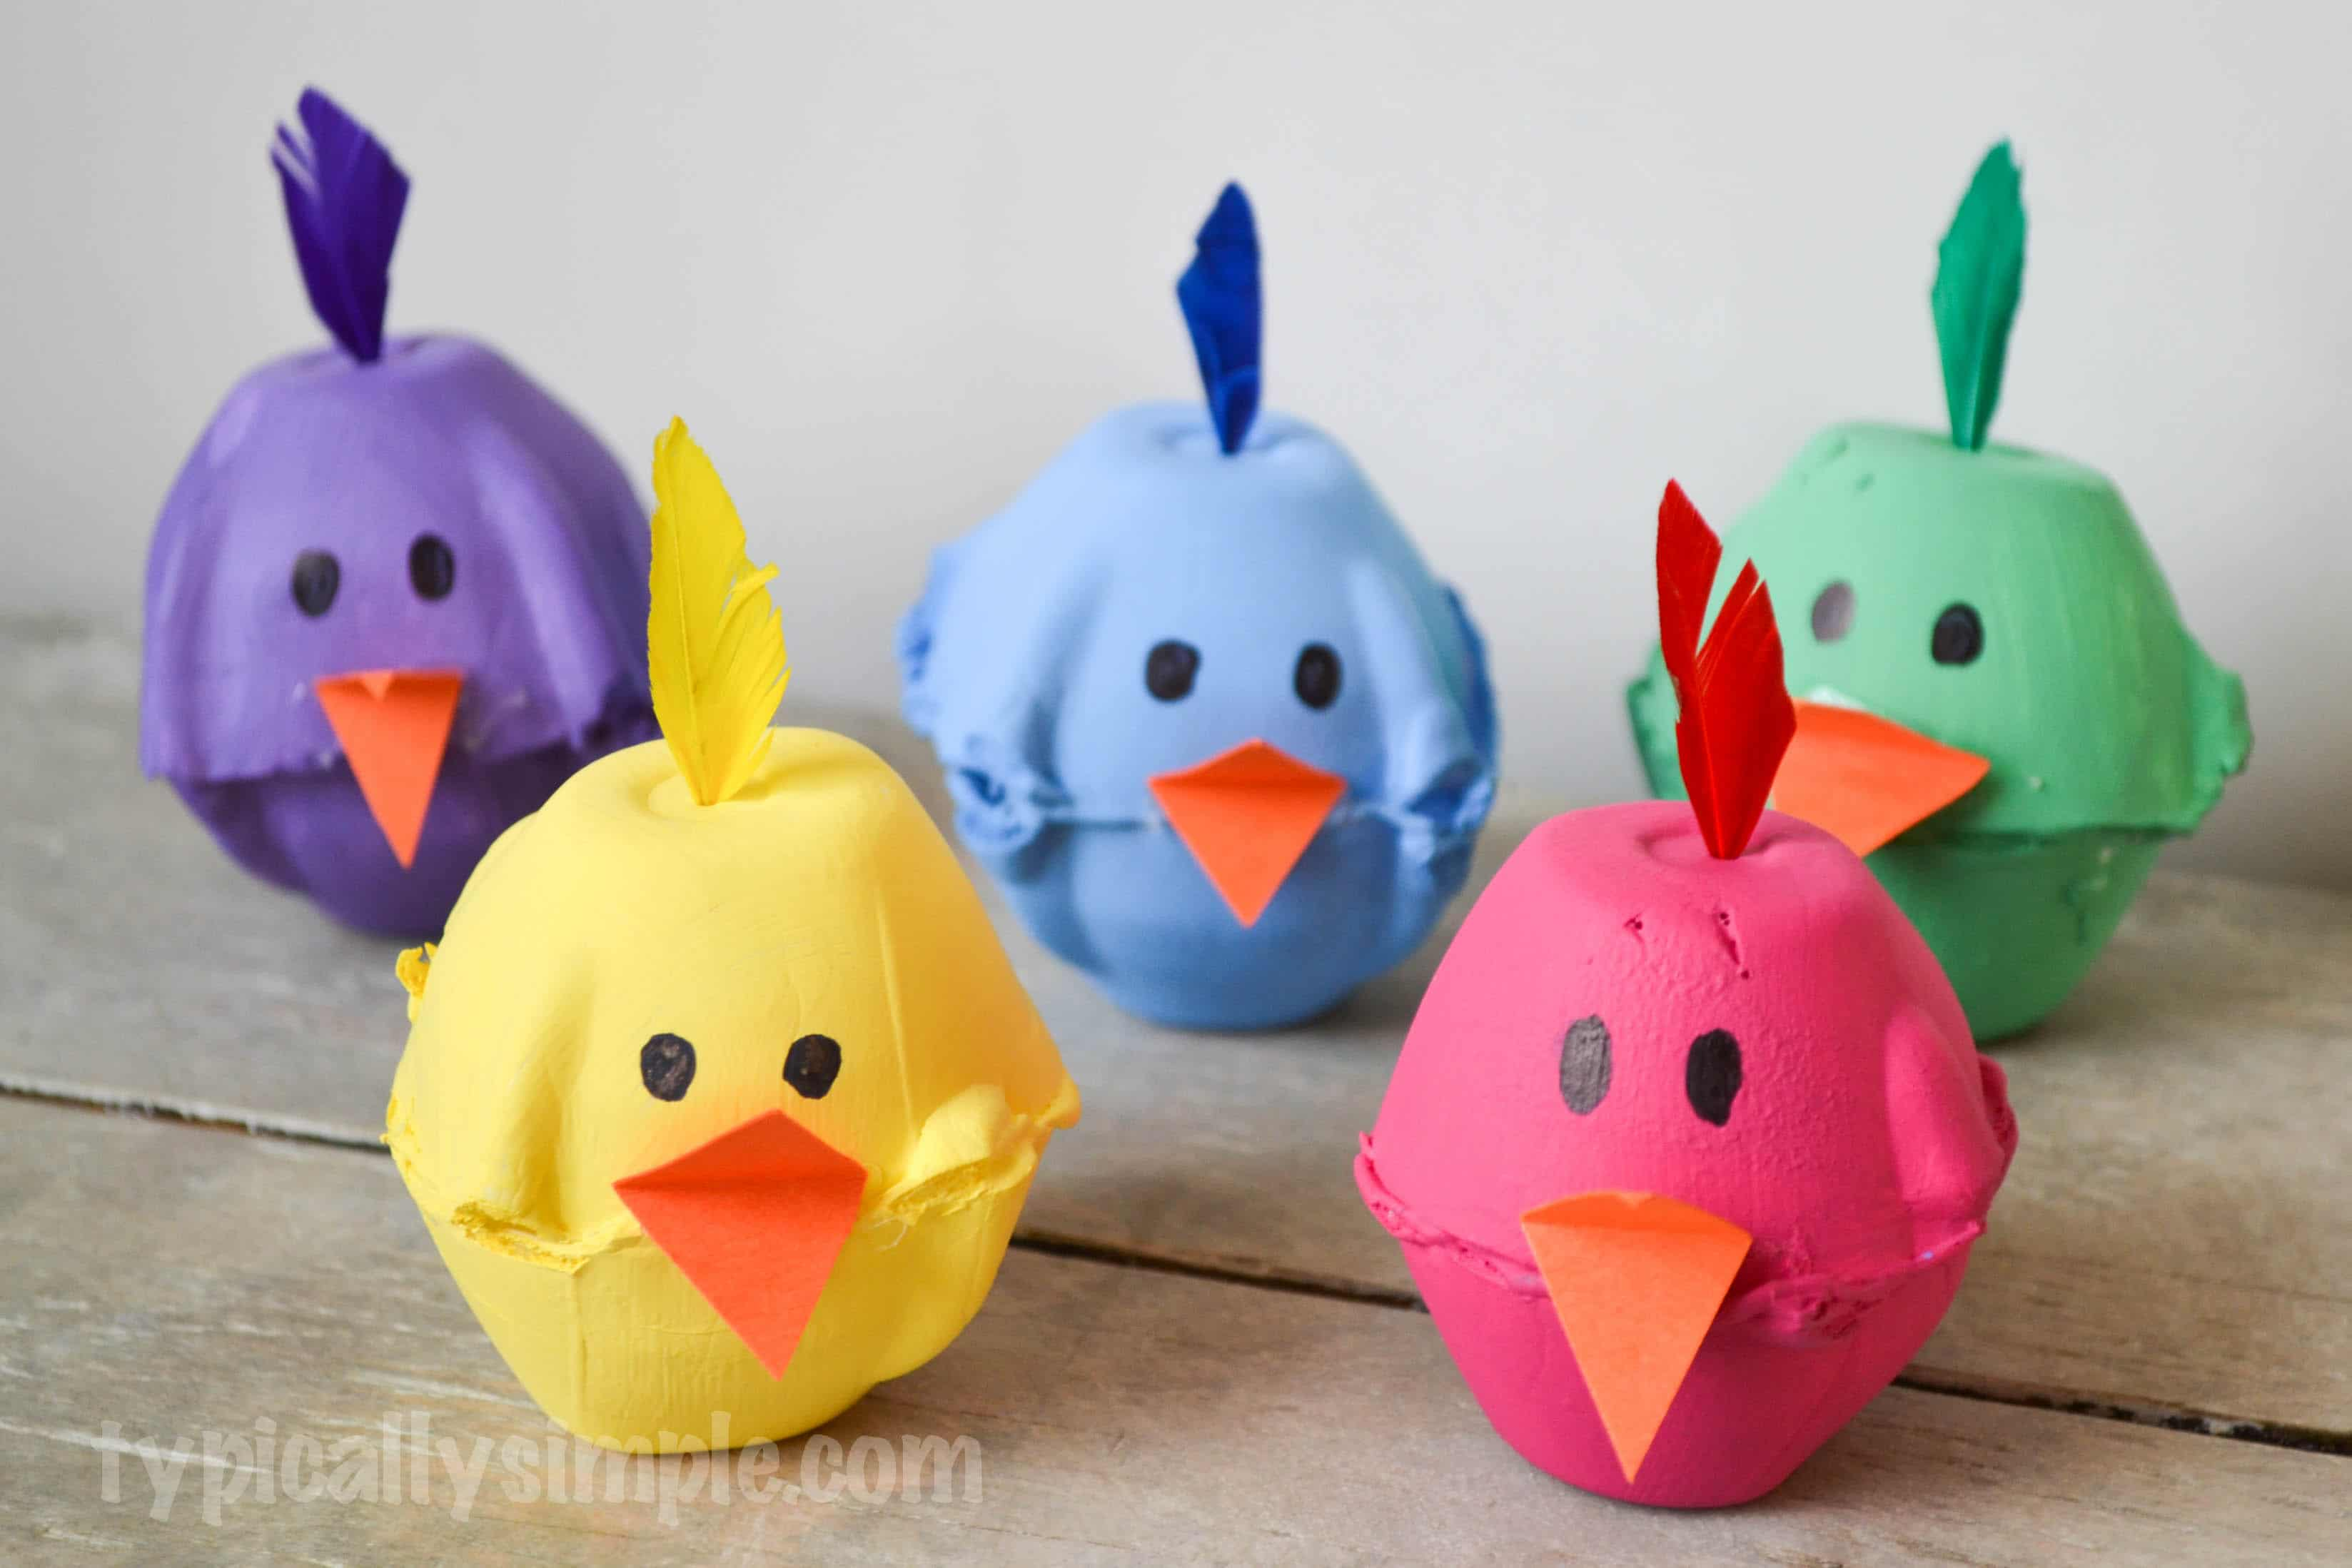 Superb Egg Carton Crafts Part - 2: Egg Carton Chicks